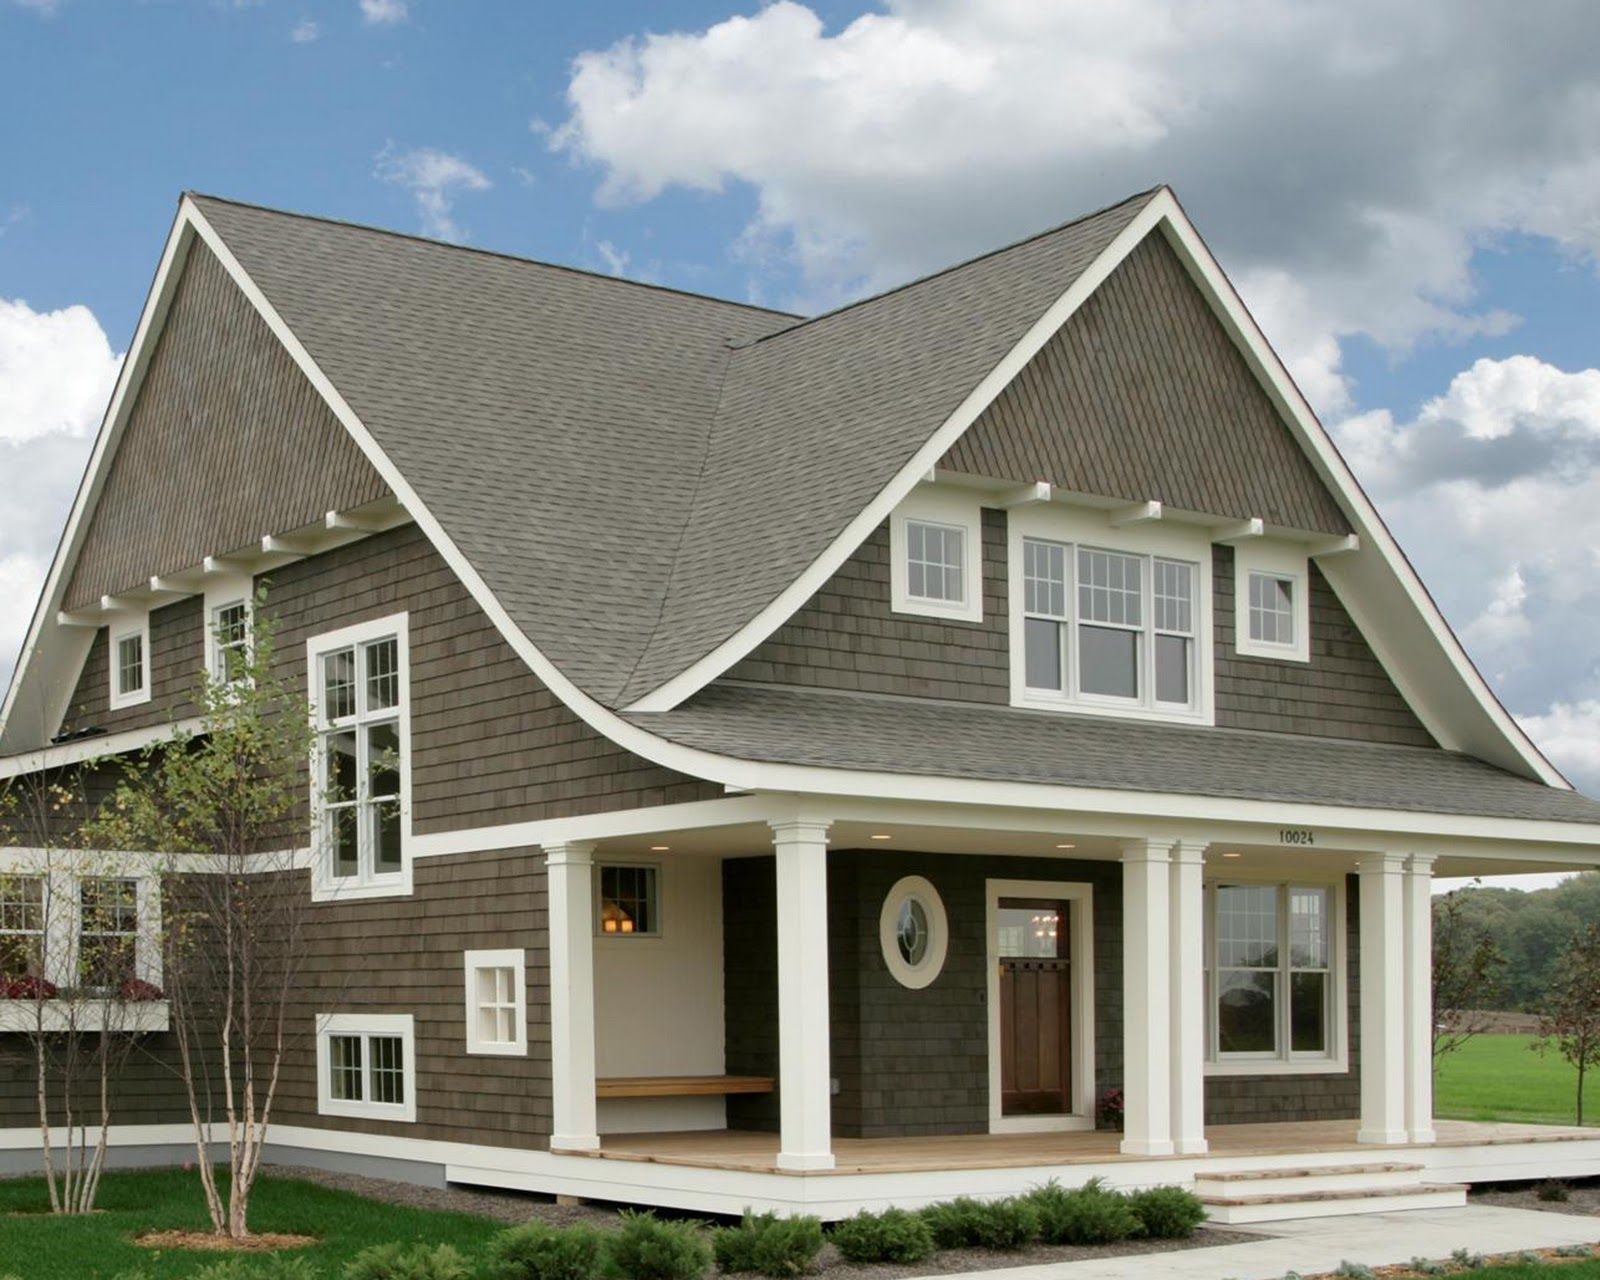 cape cod house exterior design. CURB APPEAL  another great example of beautiful design Cape Cod Shingle Style with traditional exterior in minneapolis by Ron Brenner Architects Wood Cedar Shingles The entire house is clad cedar shingles We